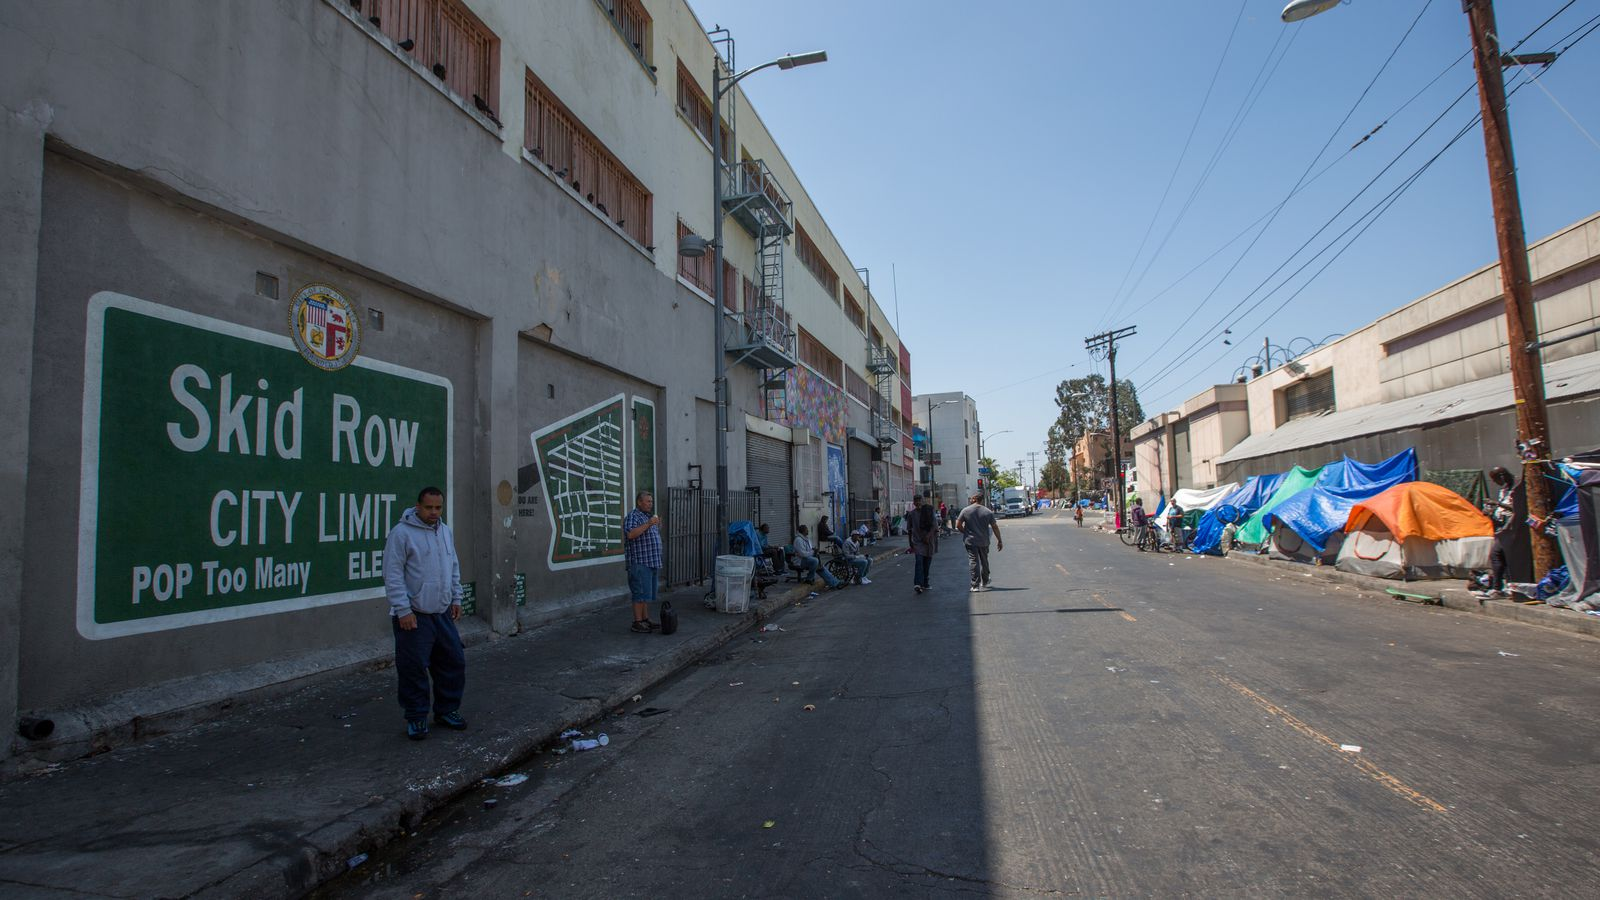 Skid Row doesn't have nearly enough restrooms - Curbed LA